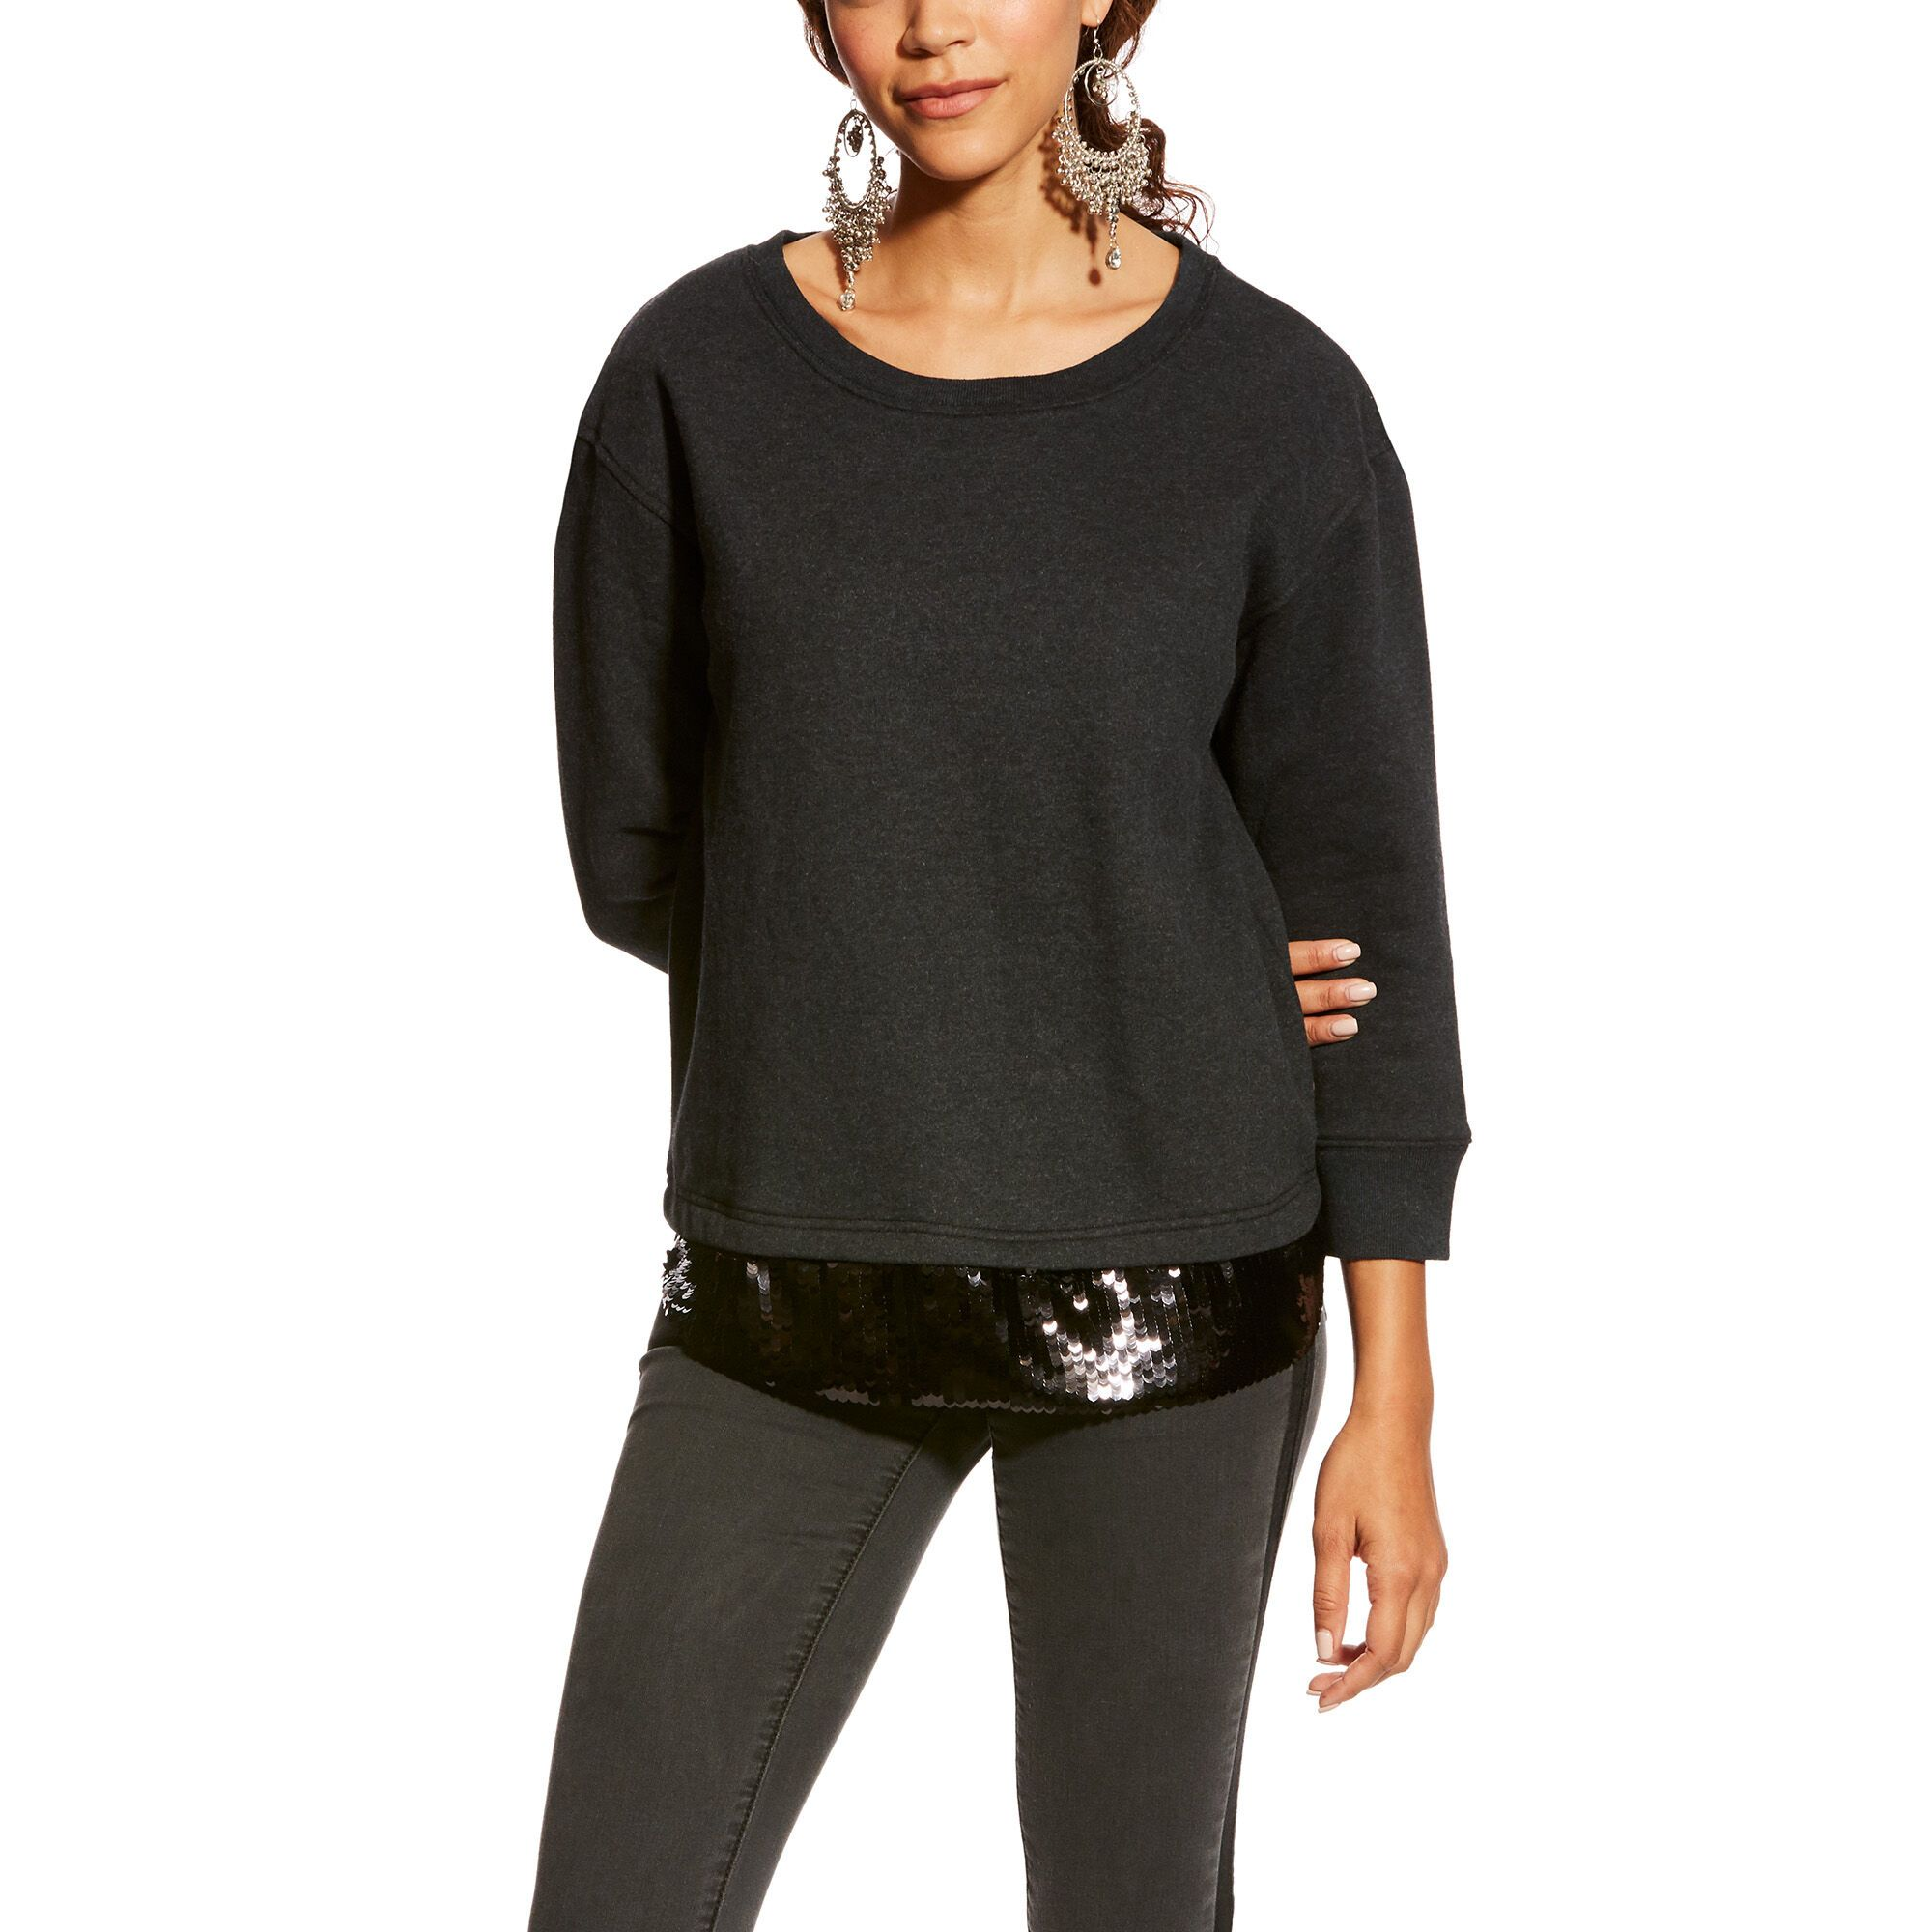 Women's 3/4 Sleeve Dazzle Top Fleece in Heather Charcoal, Large by Ariat